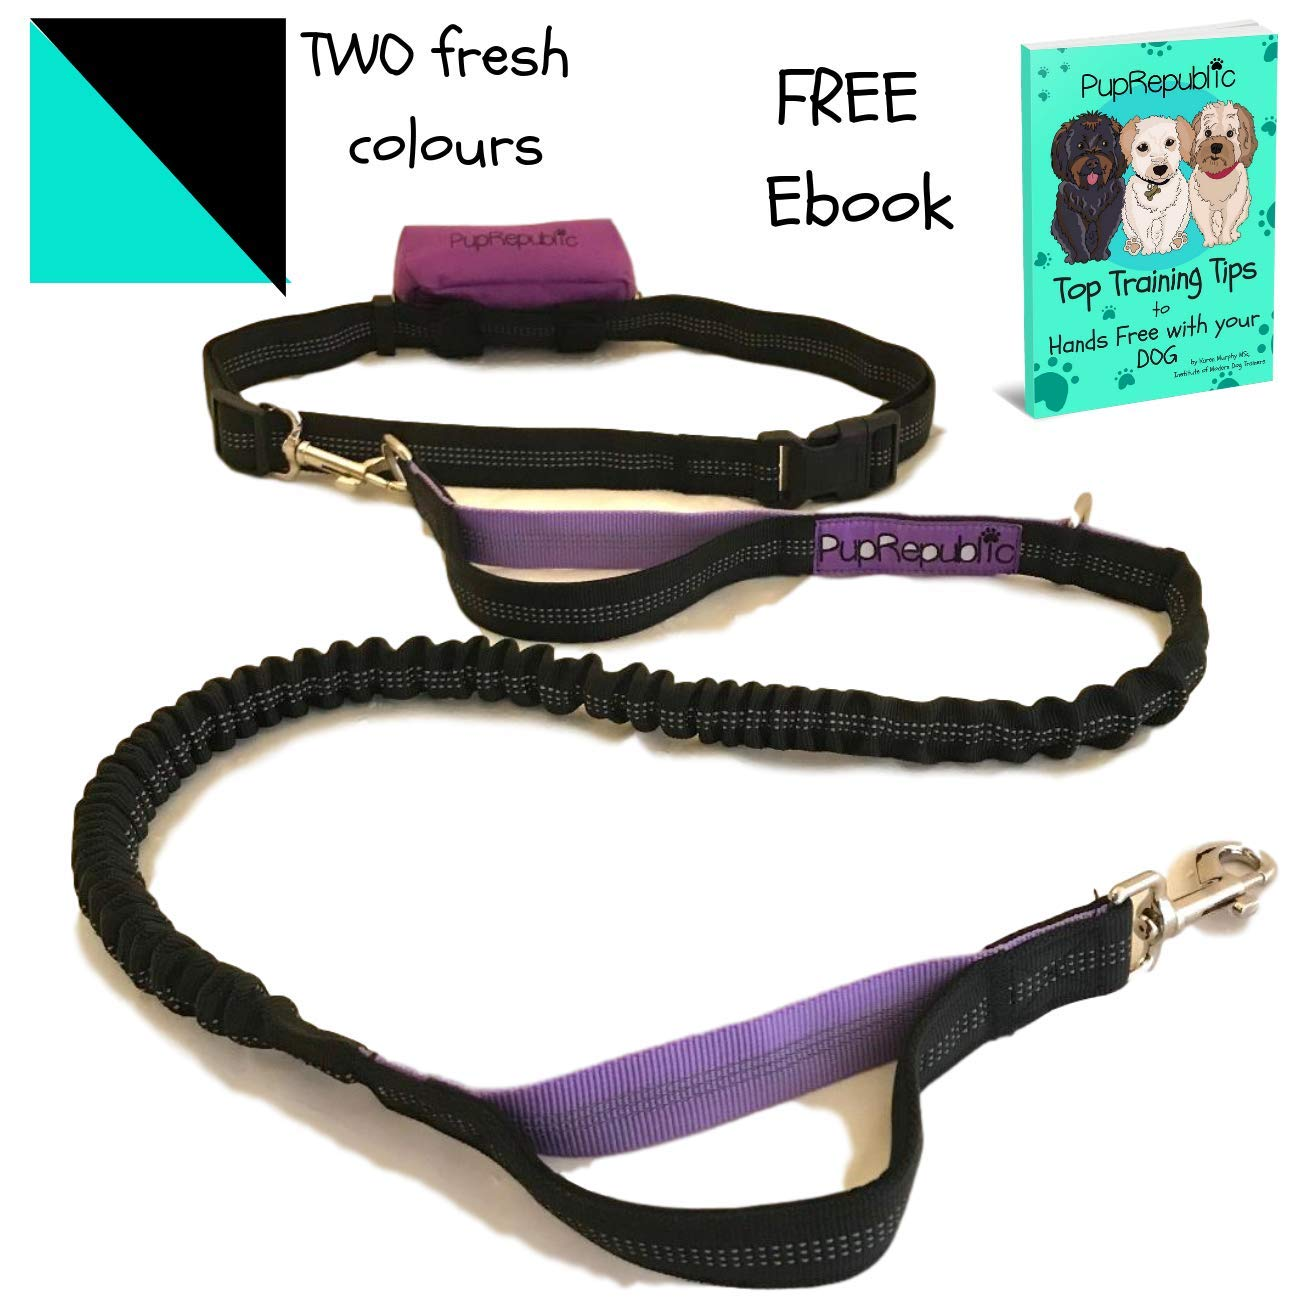 Purple PupRepublic Hands Free Dog Lead for Running Walking Hiking.Adjustable Waist Belt,Reflective Bungee Lead FREE Poo Bag Pouch